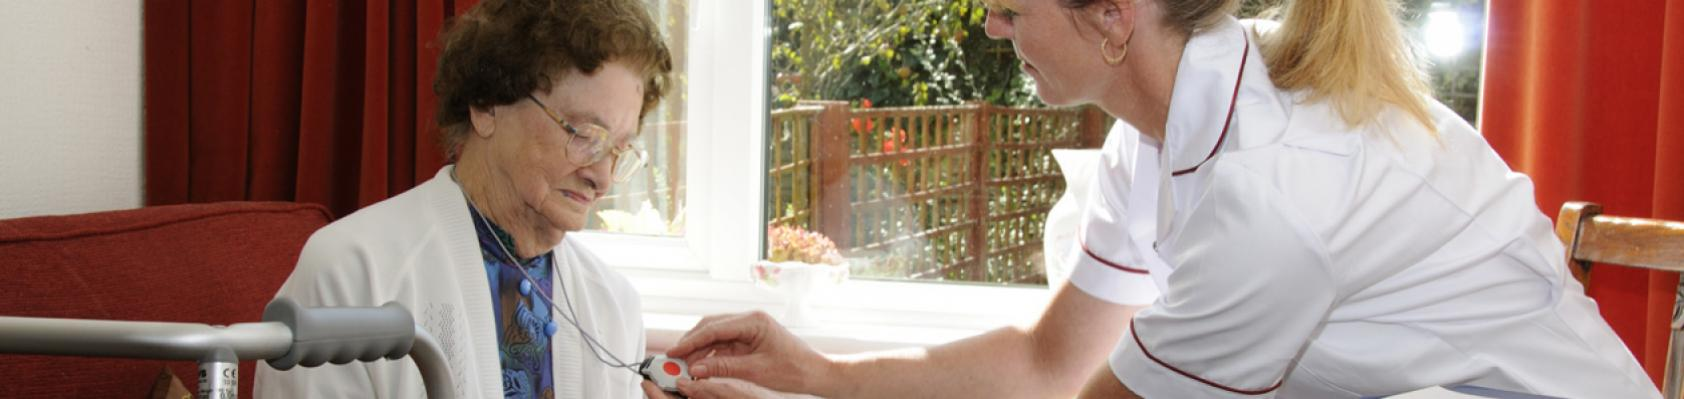 A woman having her pendant alarm installed.